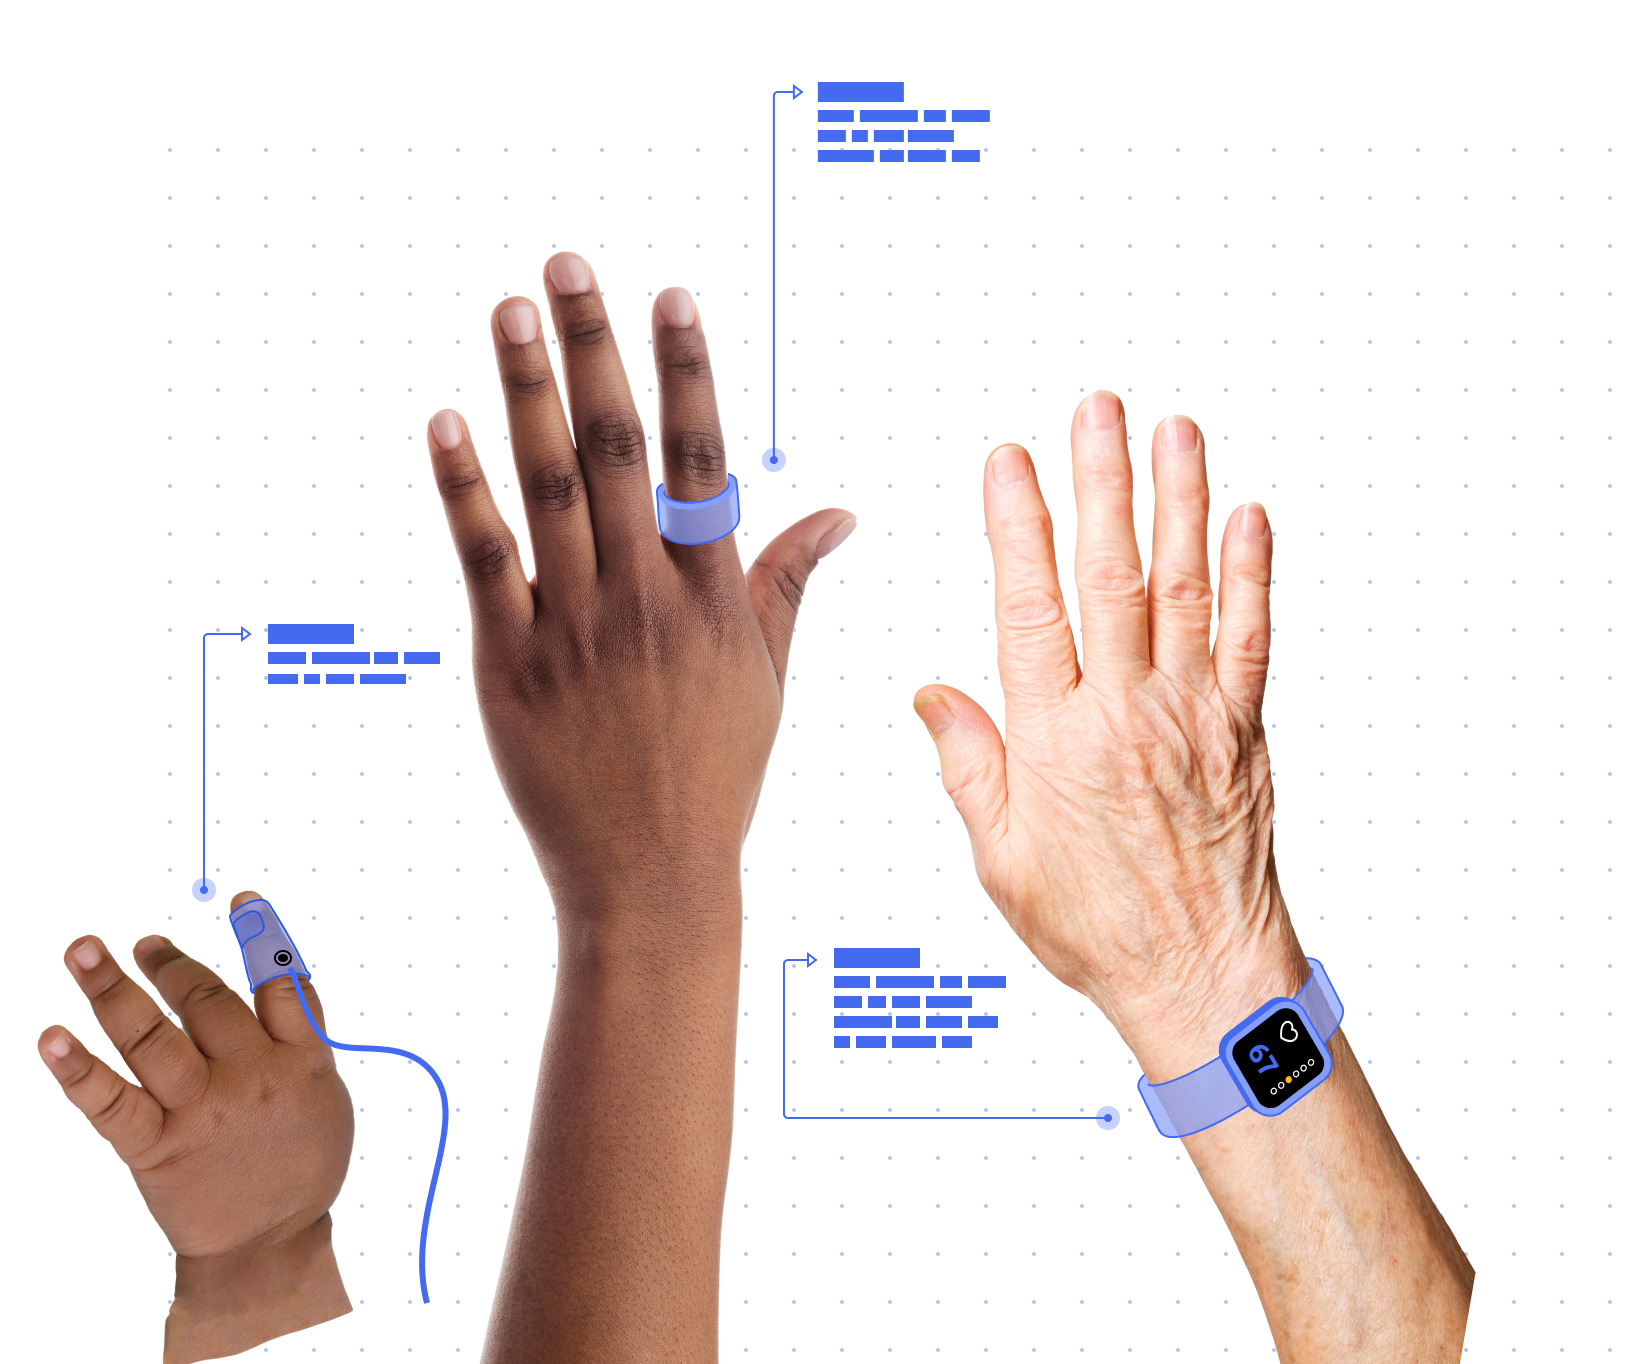 Three hands with connected sensors connected.